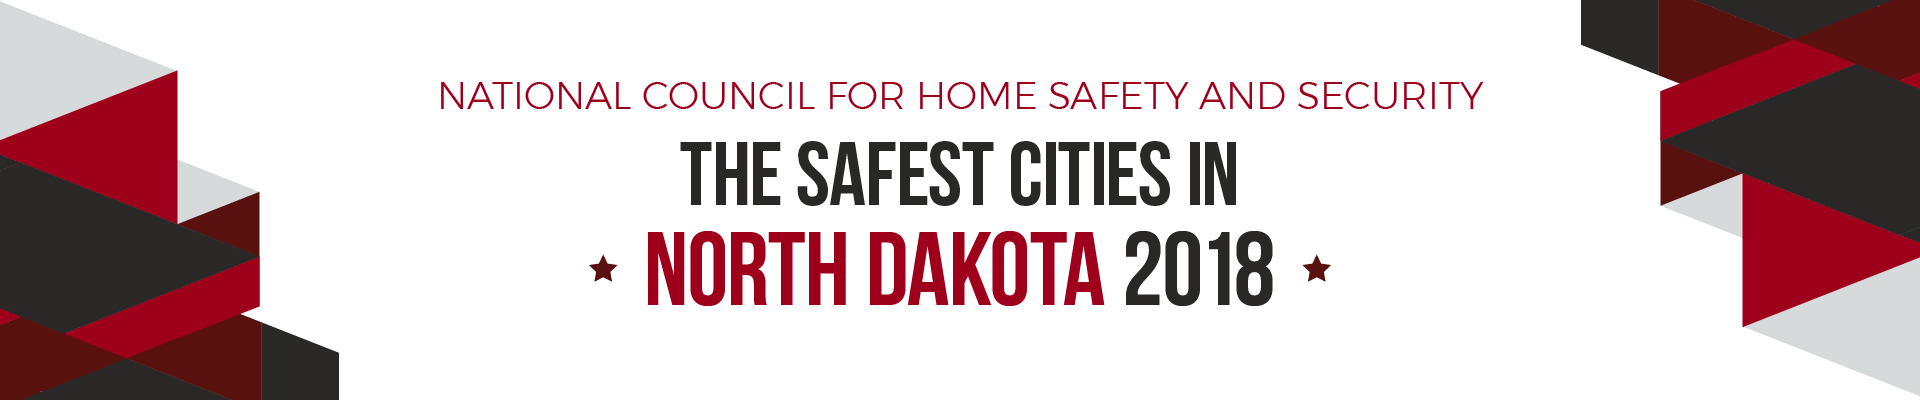 safe cities north dakota 2018